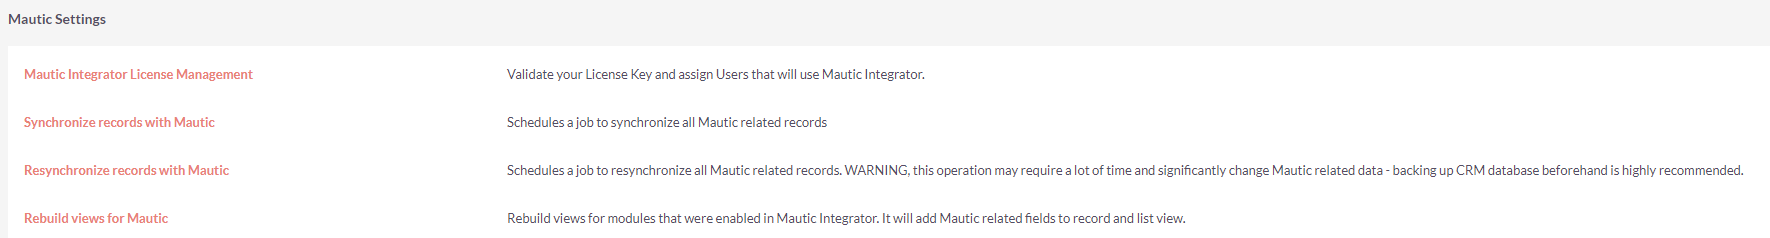 Resynchronize records with Mautic.png